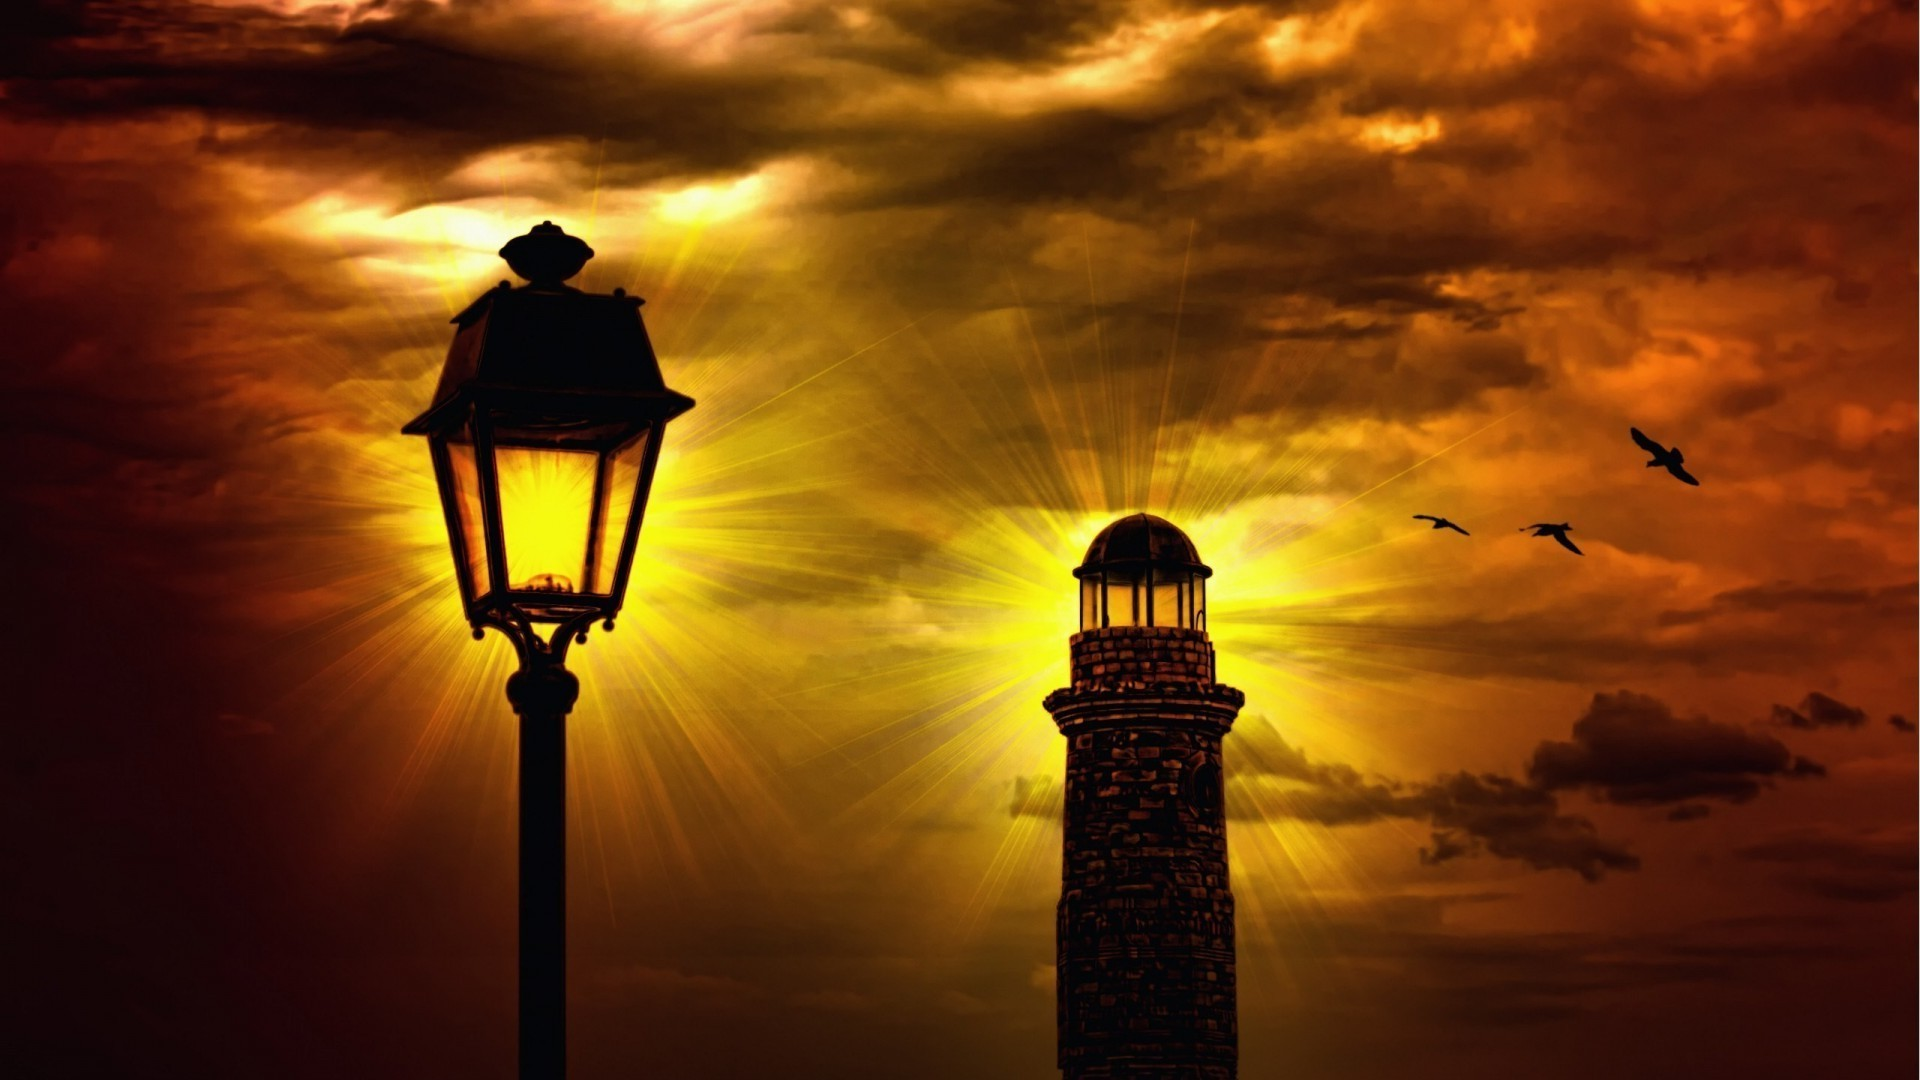 The lighthouse and the lantern against the sky